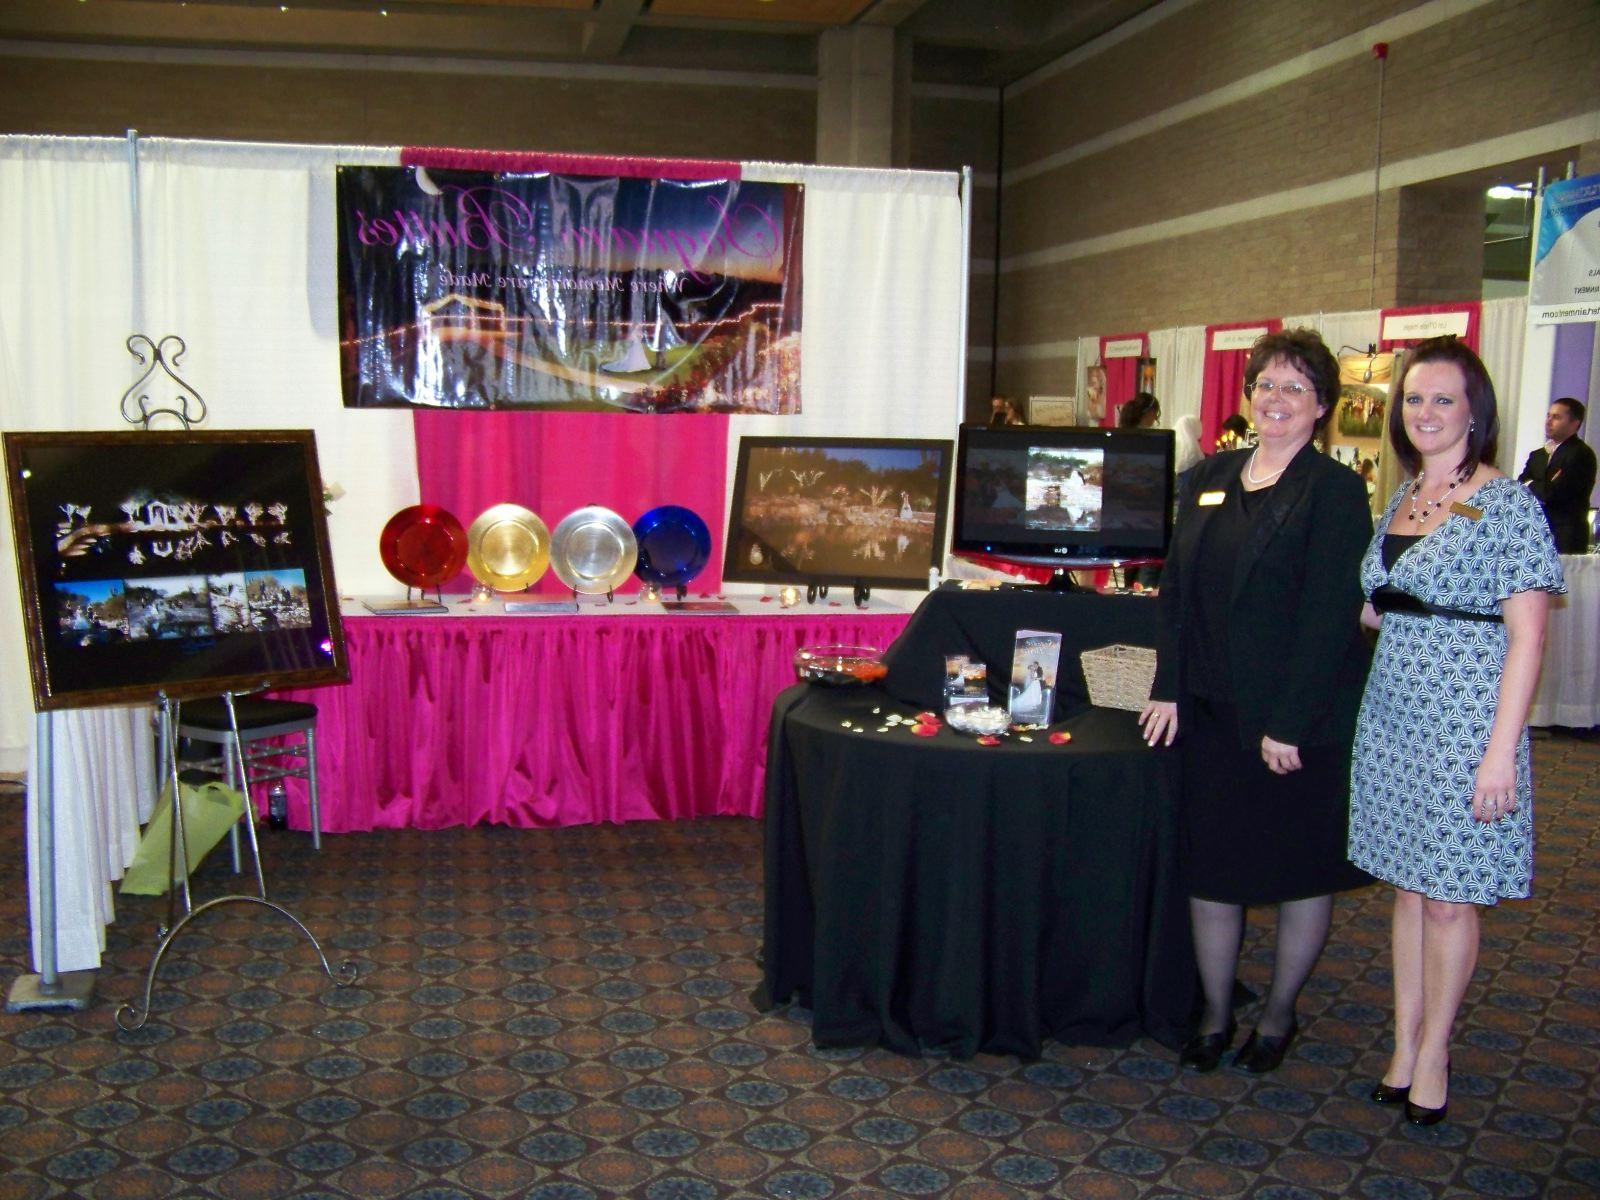 Tucson Bridal Expo held at